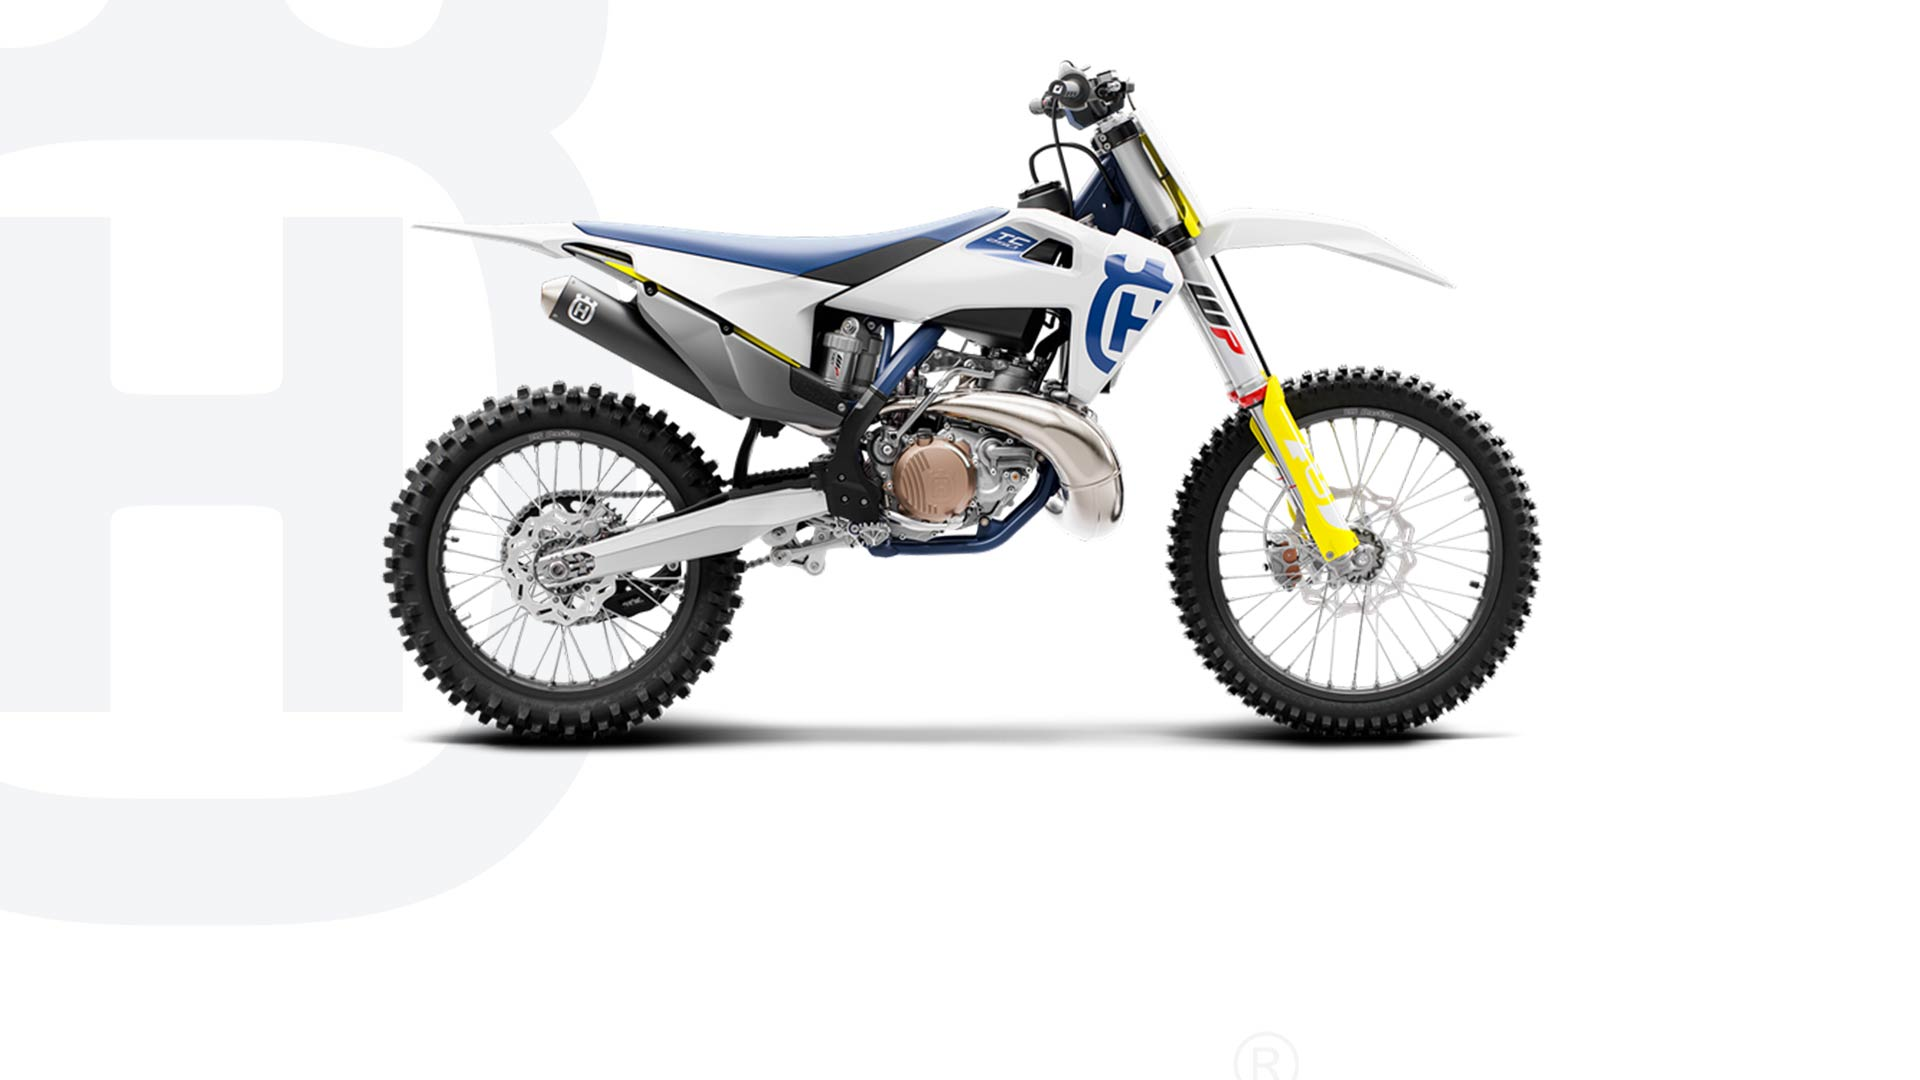 Motocross Garage Accessories Husqvarna Motorcycles At Midwest Racing Wiltshire Uk